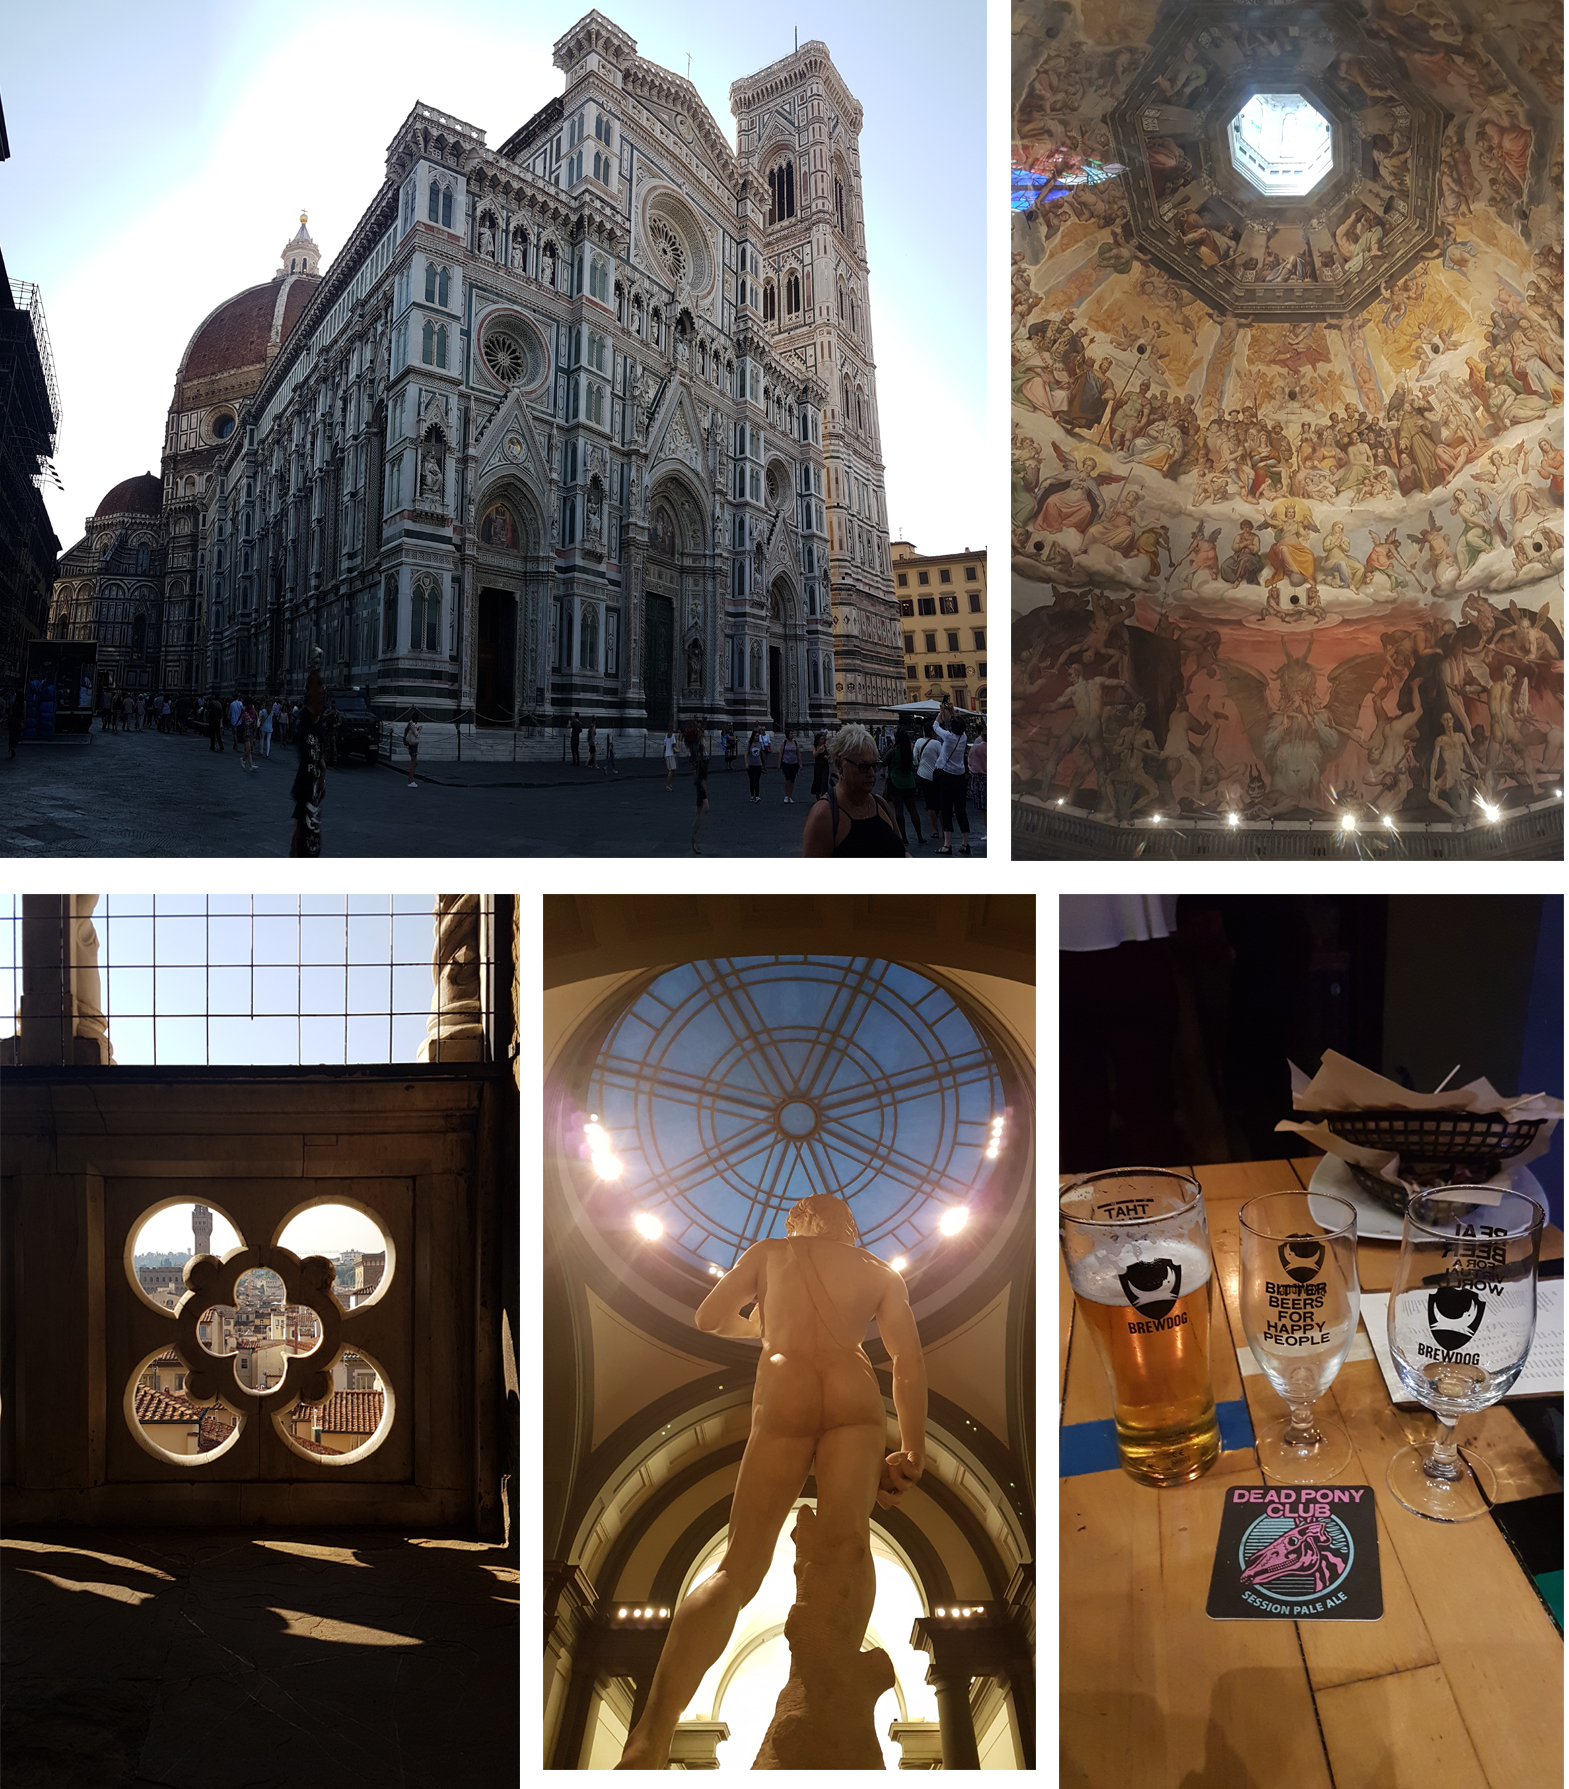 Left to right, top to bottom: Florence Cathedral, Giotto's Campanile, MIchelangelo's David (Uffizi Gallery), BrewDog Firenze